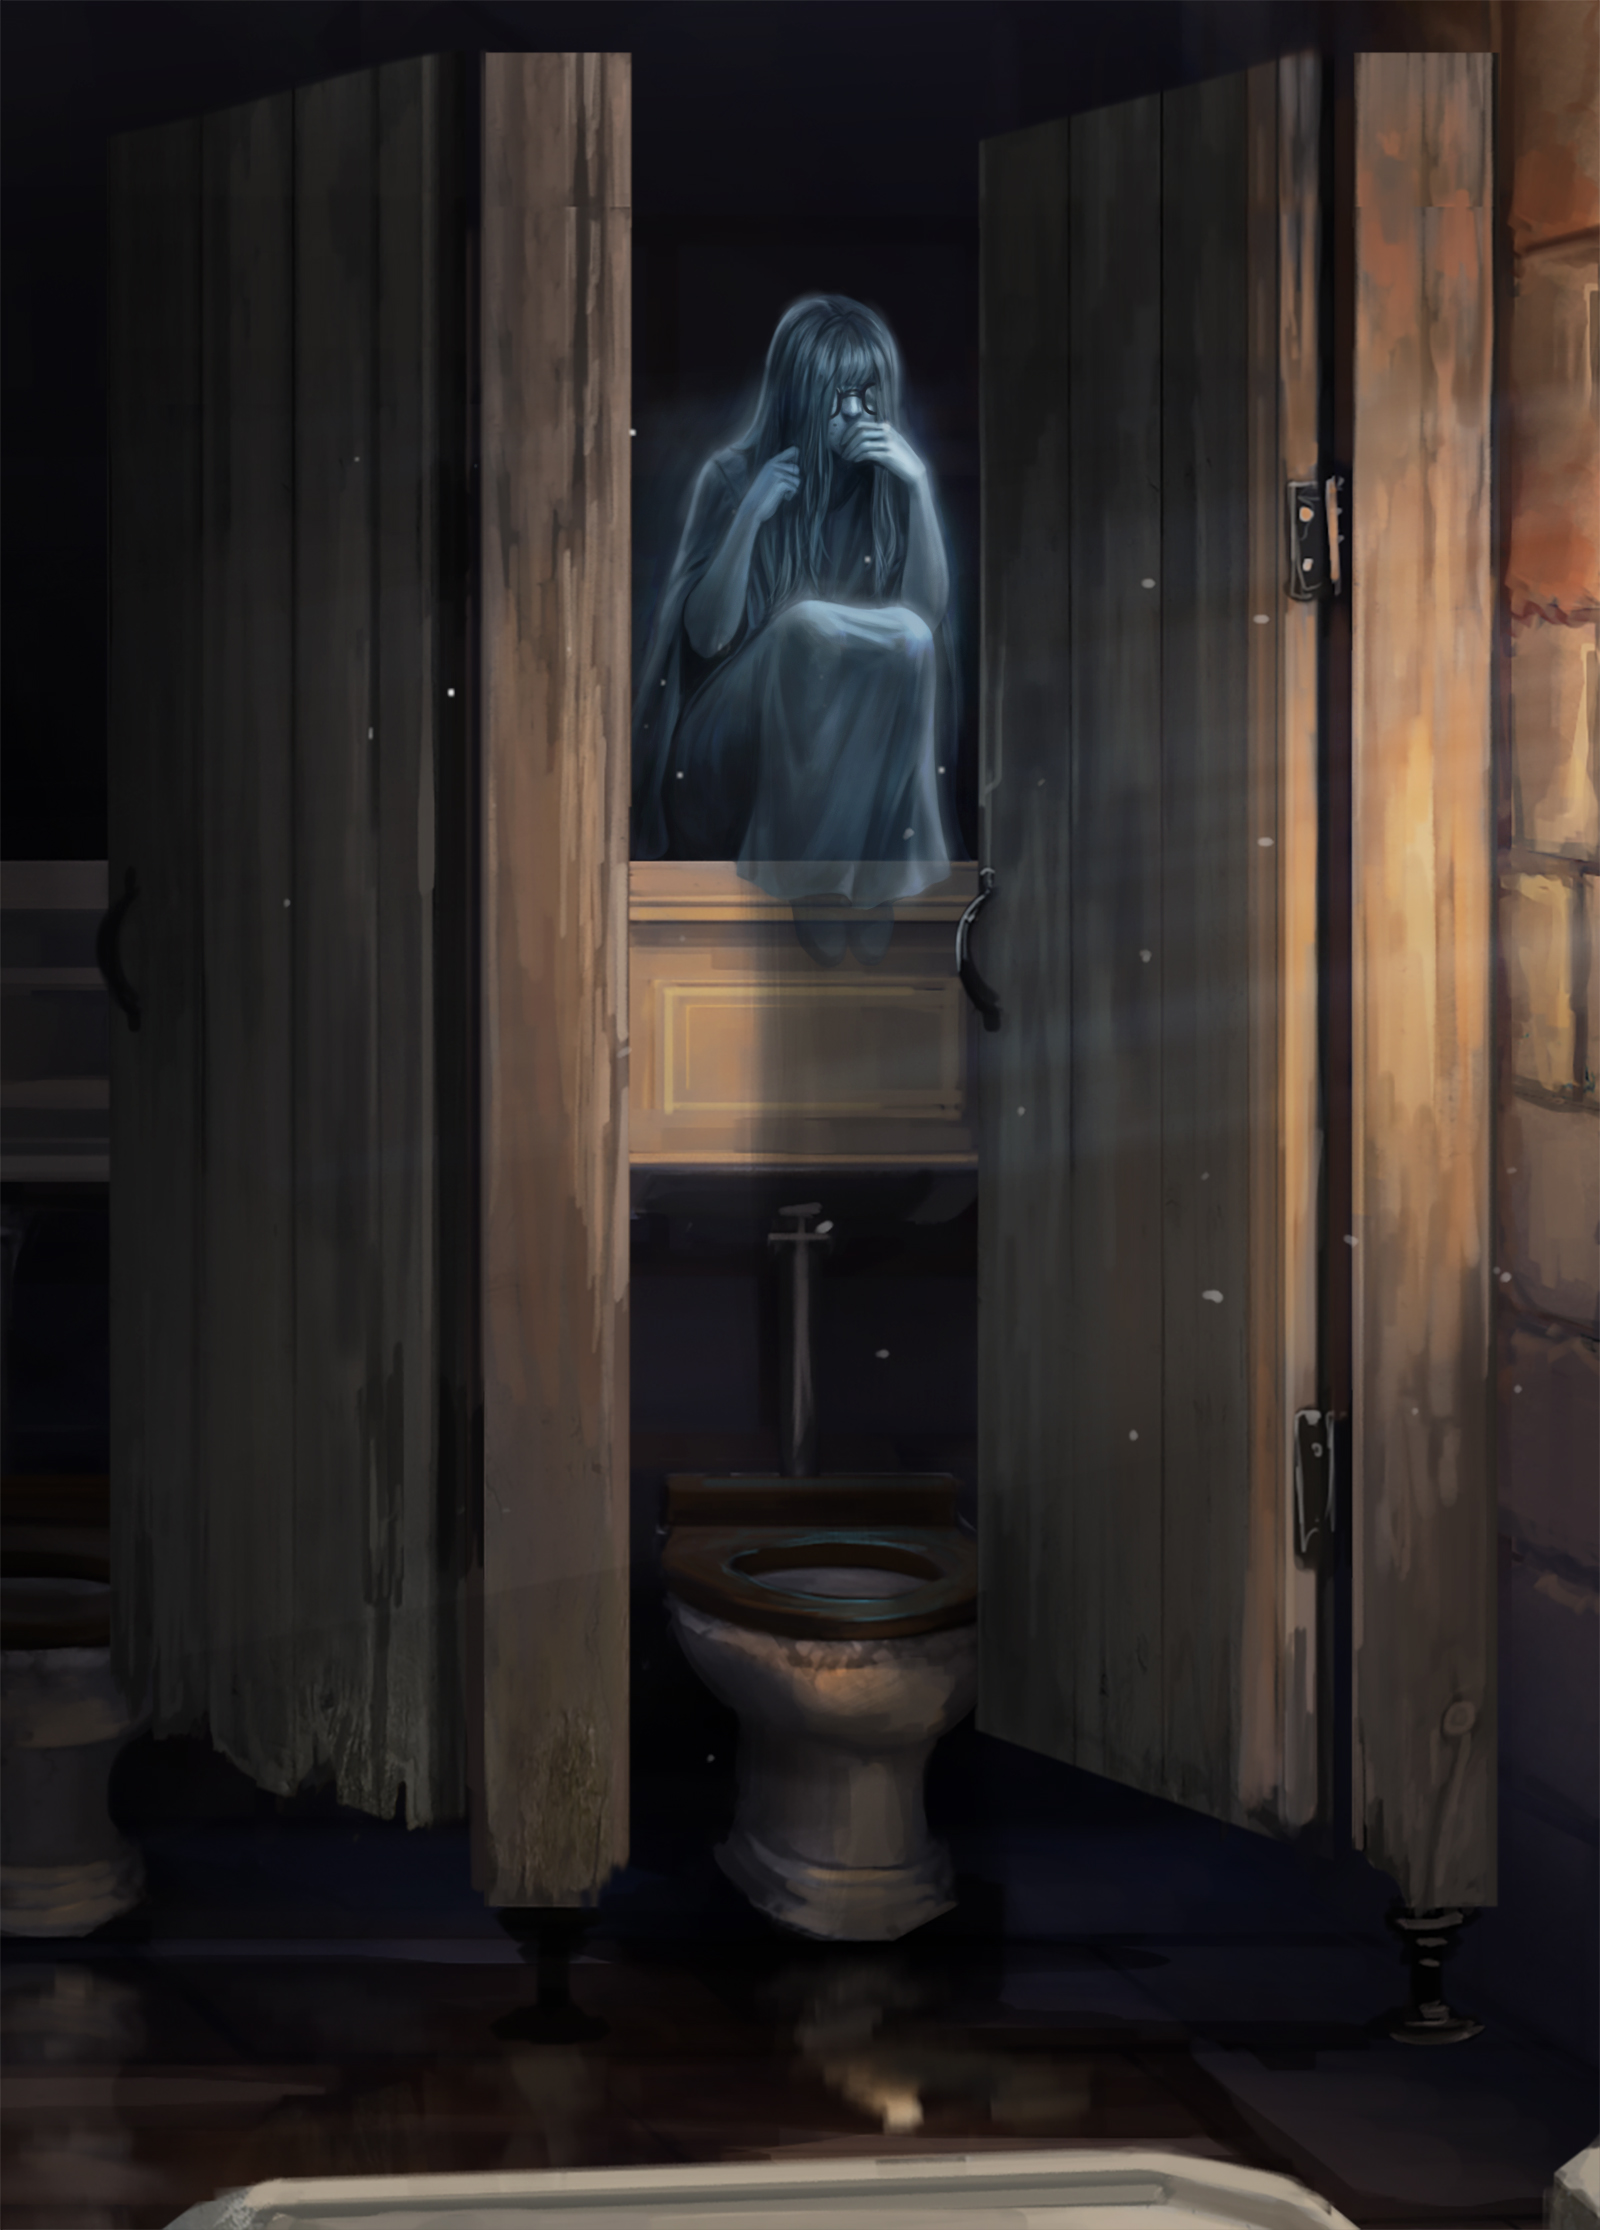 Moaning Myrtle in her bathroom